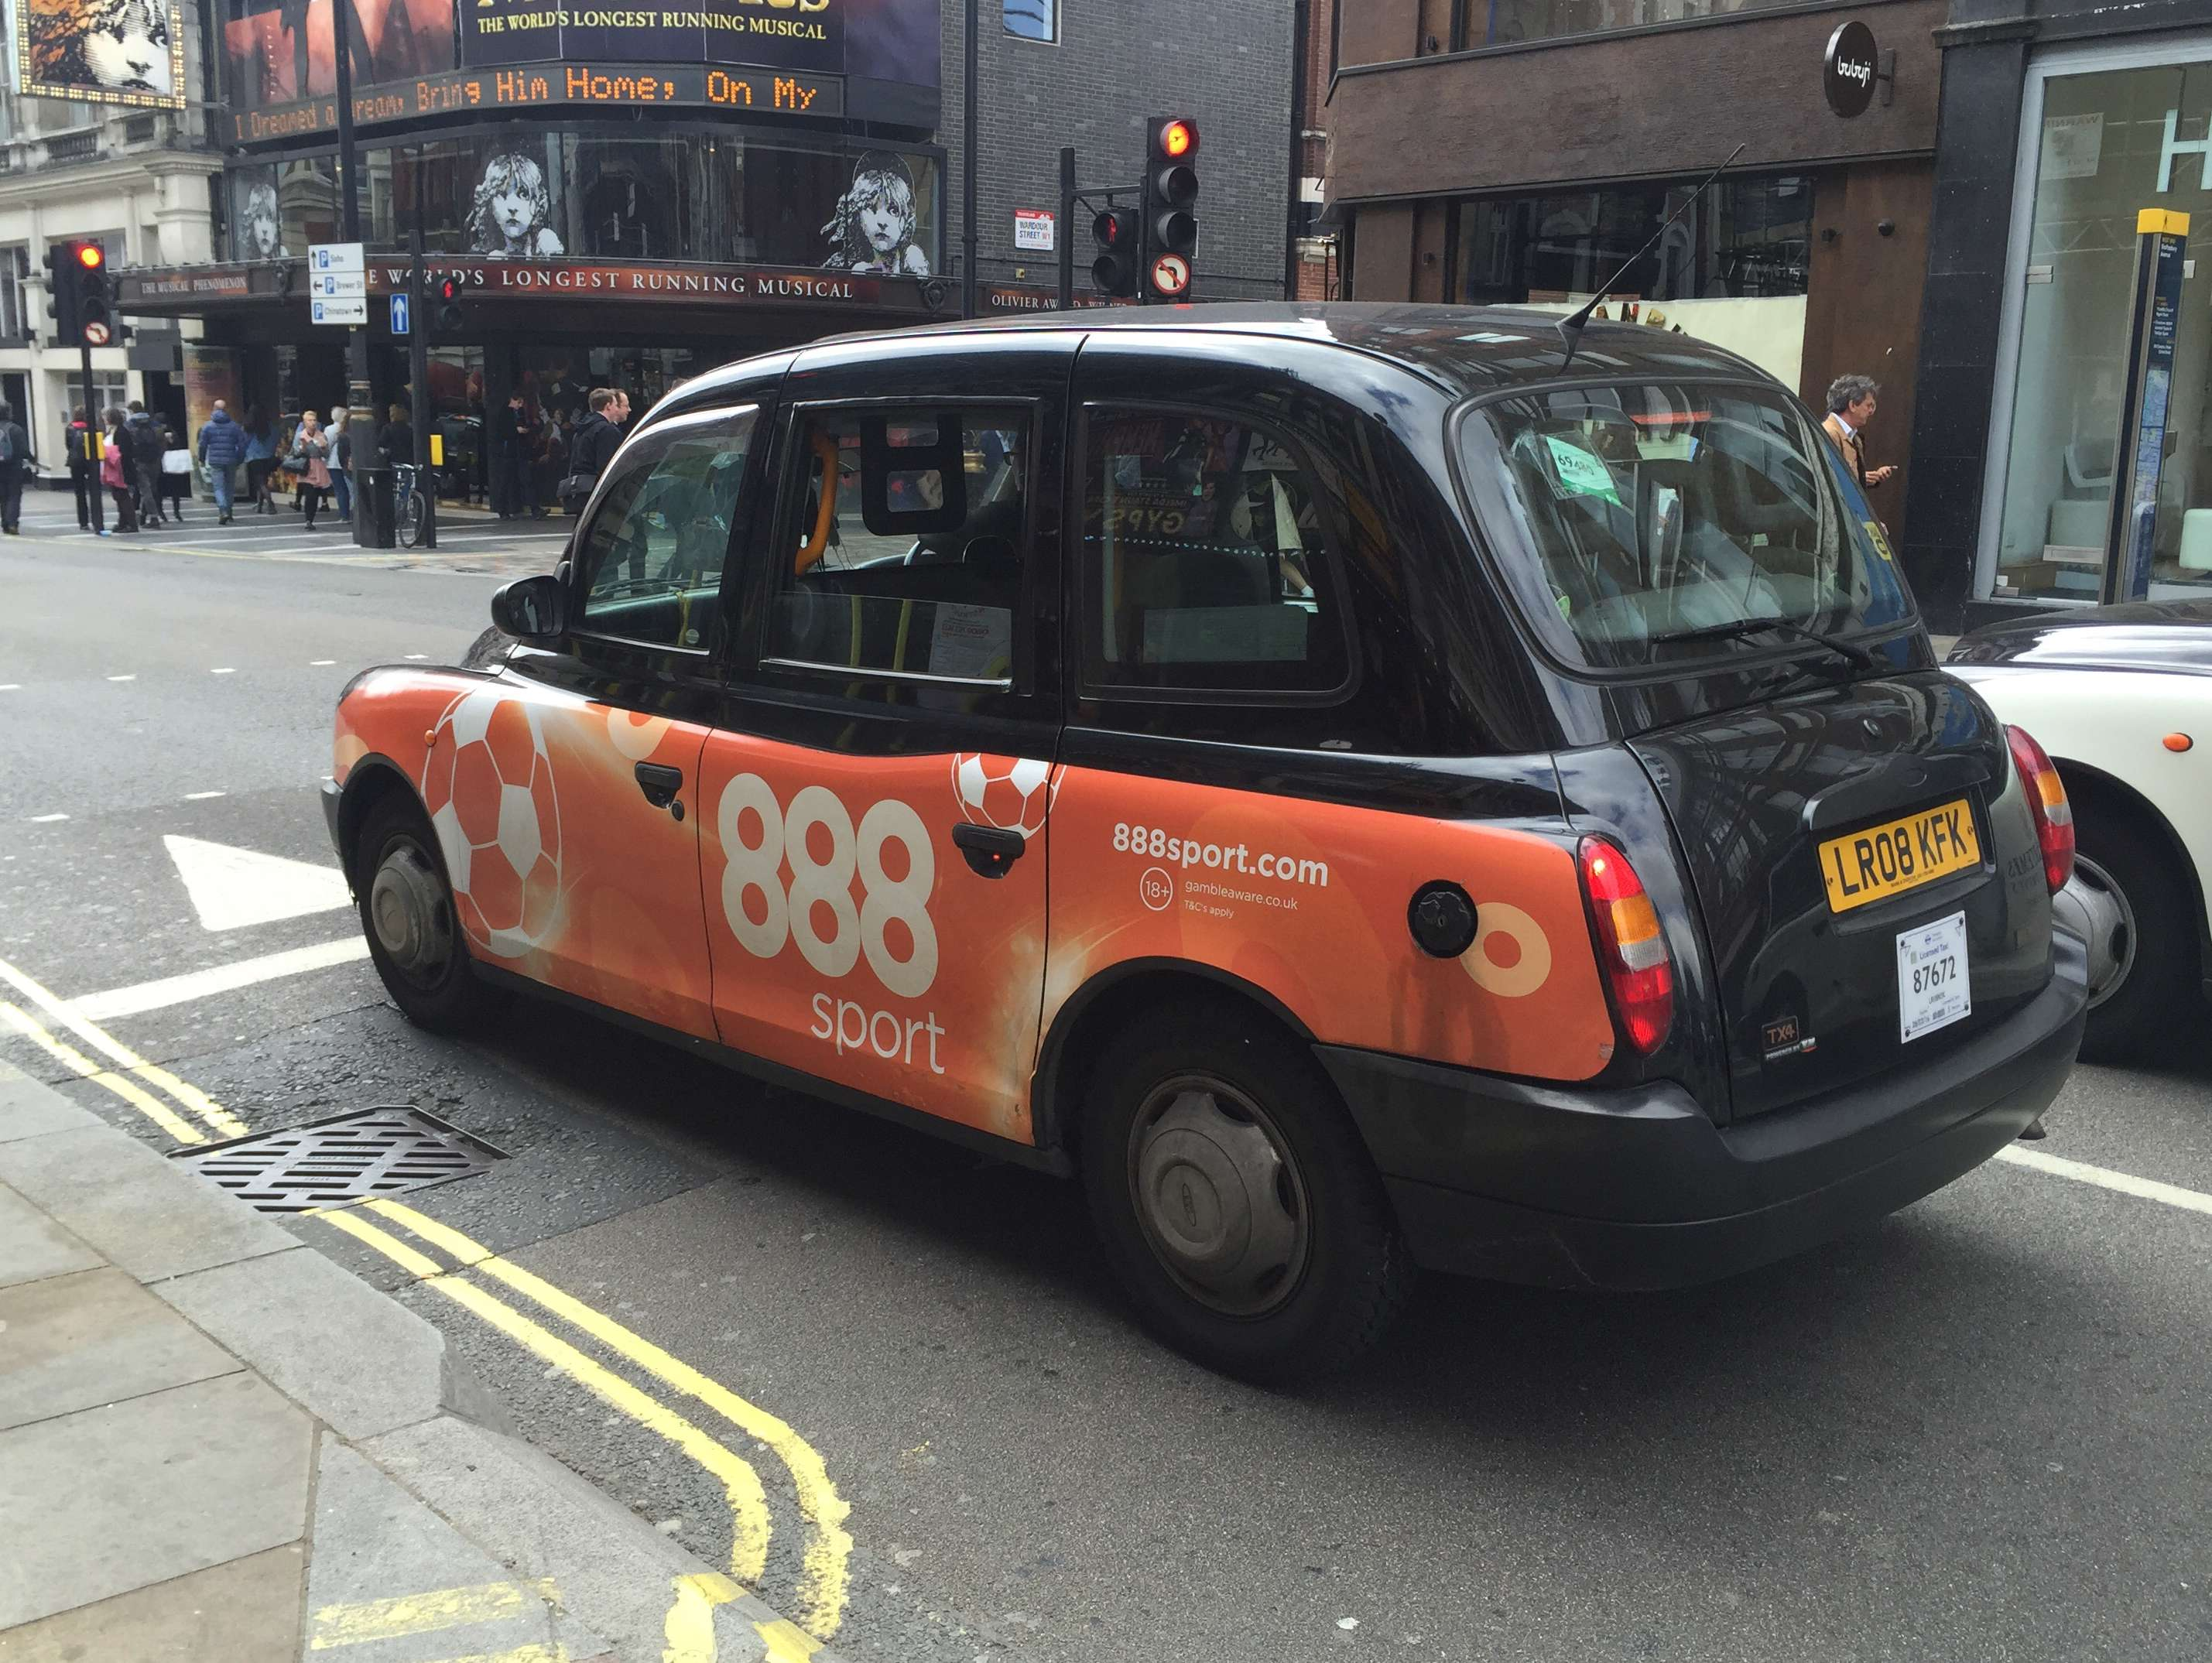 Reasons to live it large in London, England. - Black cabs!